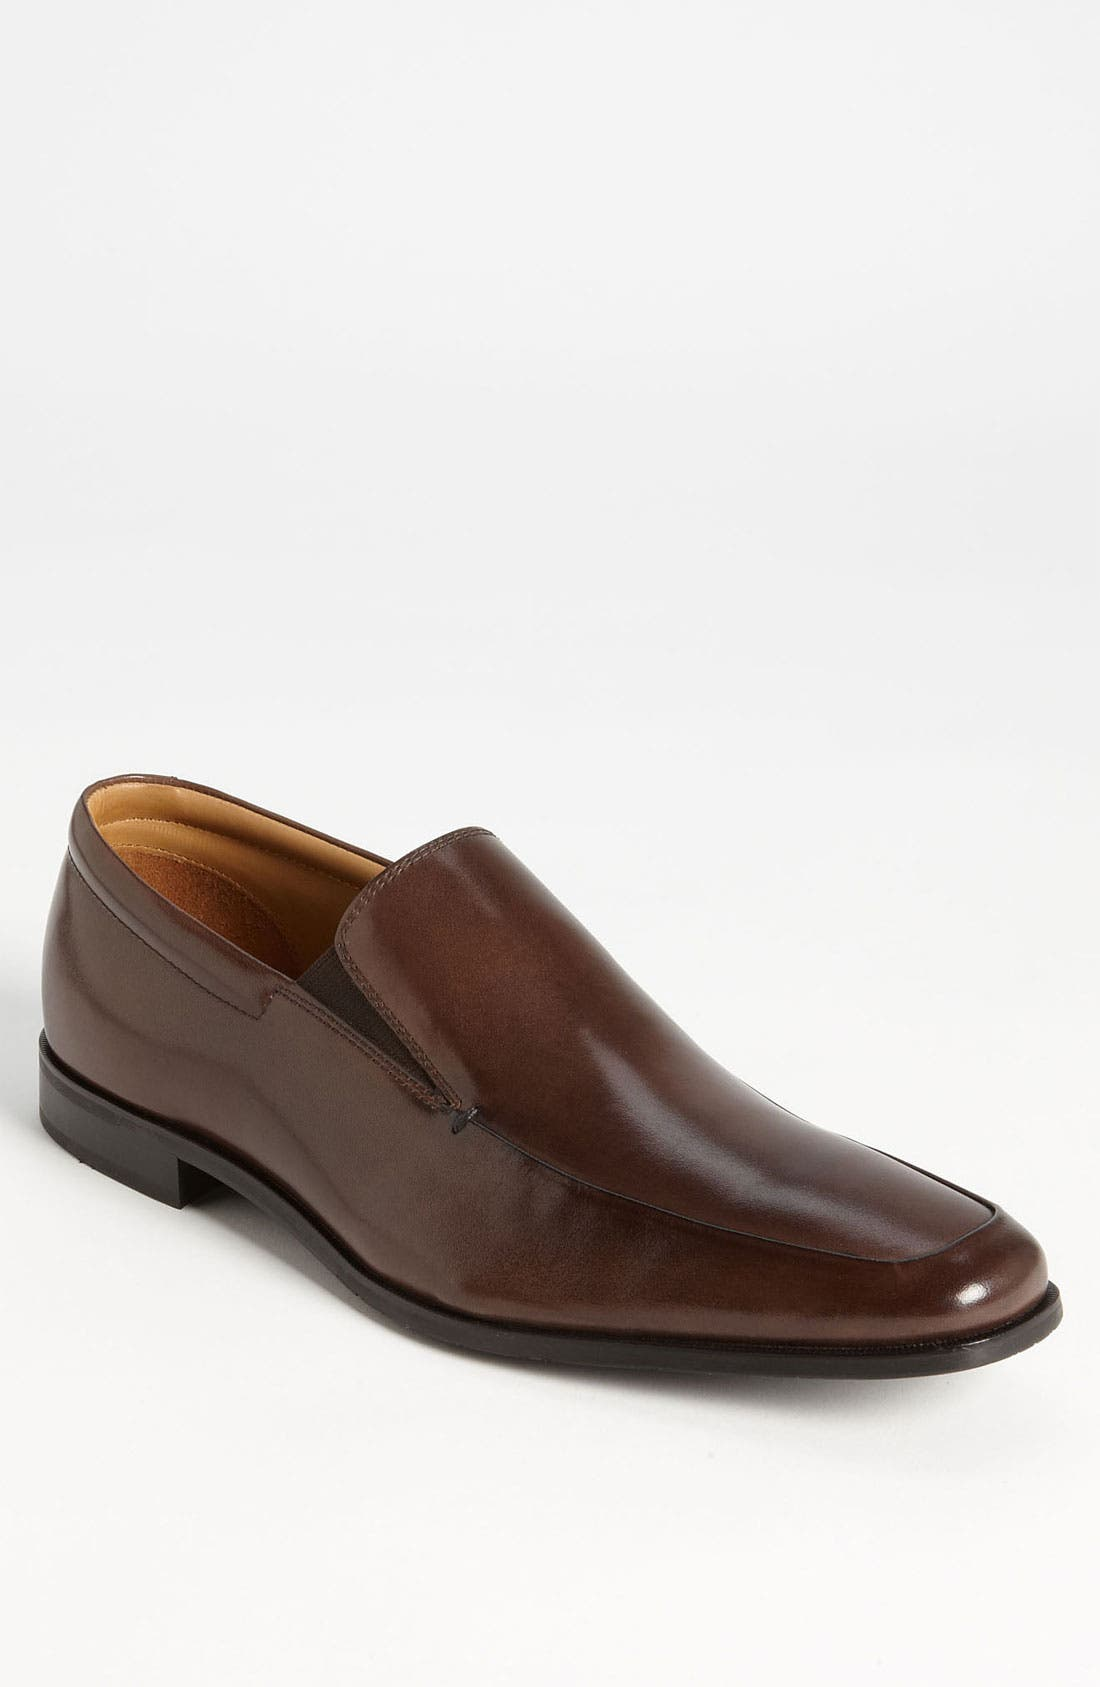 Main Image - Gordon Rush 'Elliot' Venetian Loafer